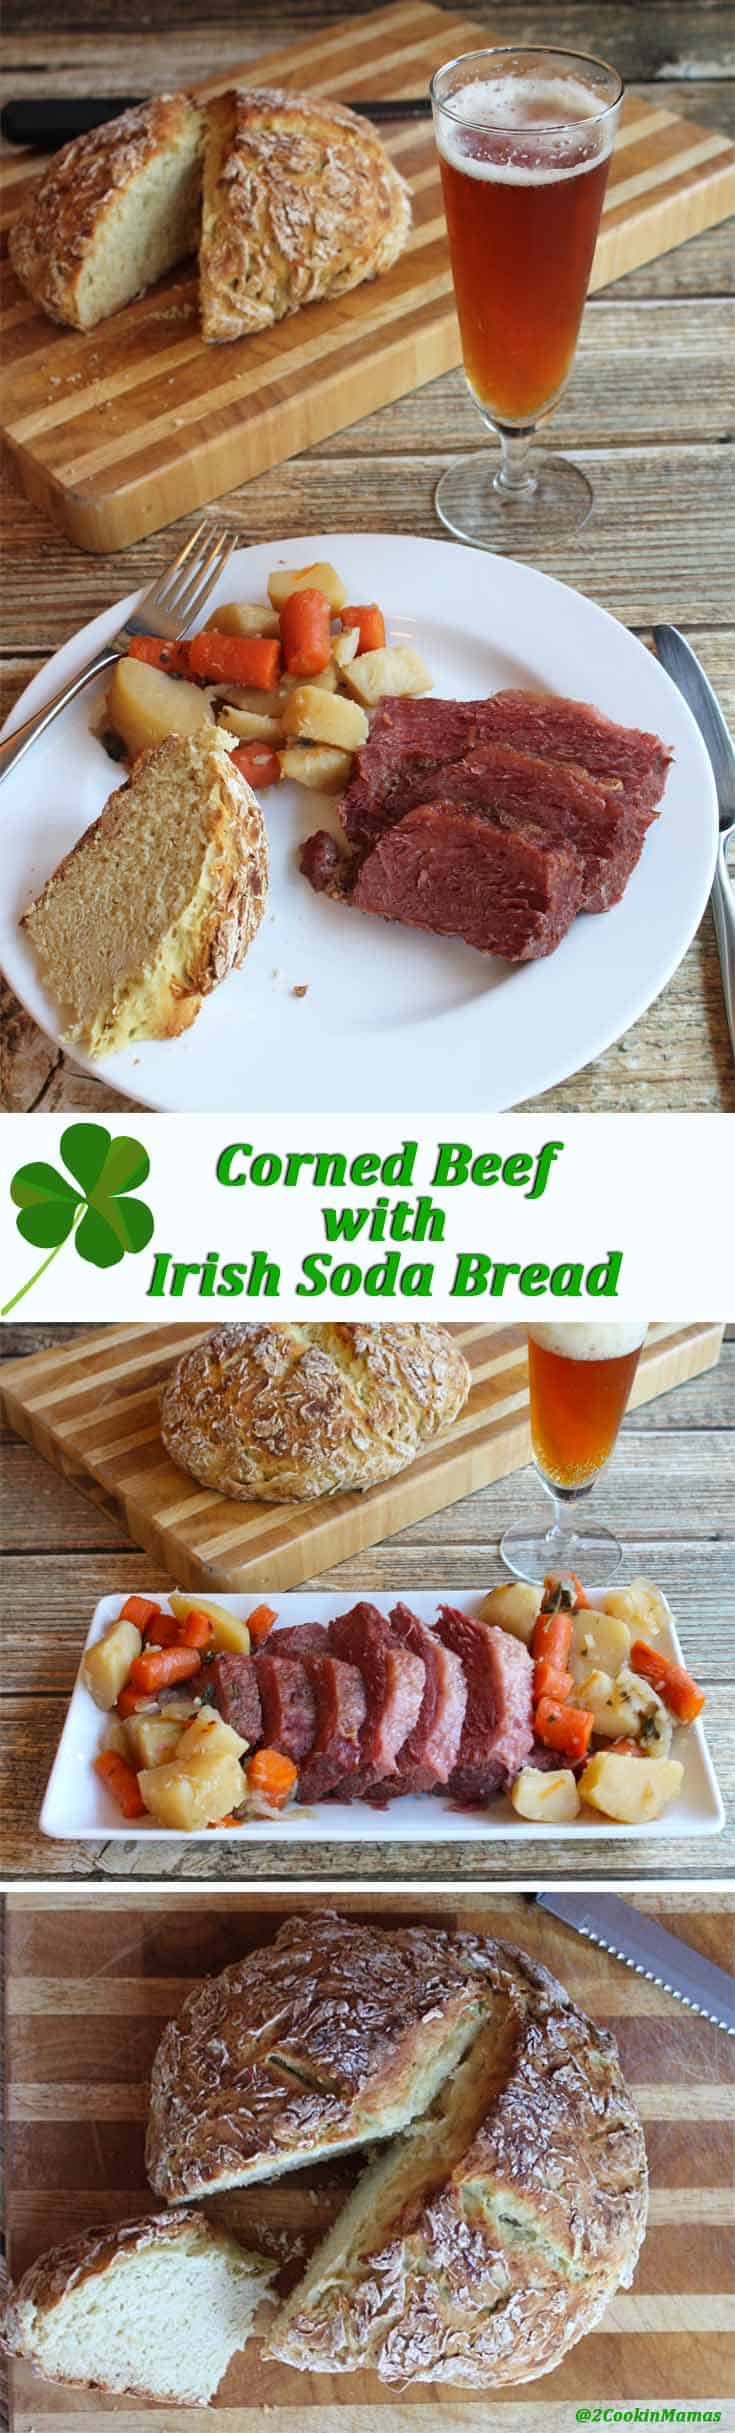 Not even a wee bit of work to cook up this yummy corned beef. Just put everything in the crockpot & come home to a delicious Irish dinner.